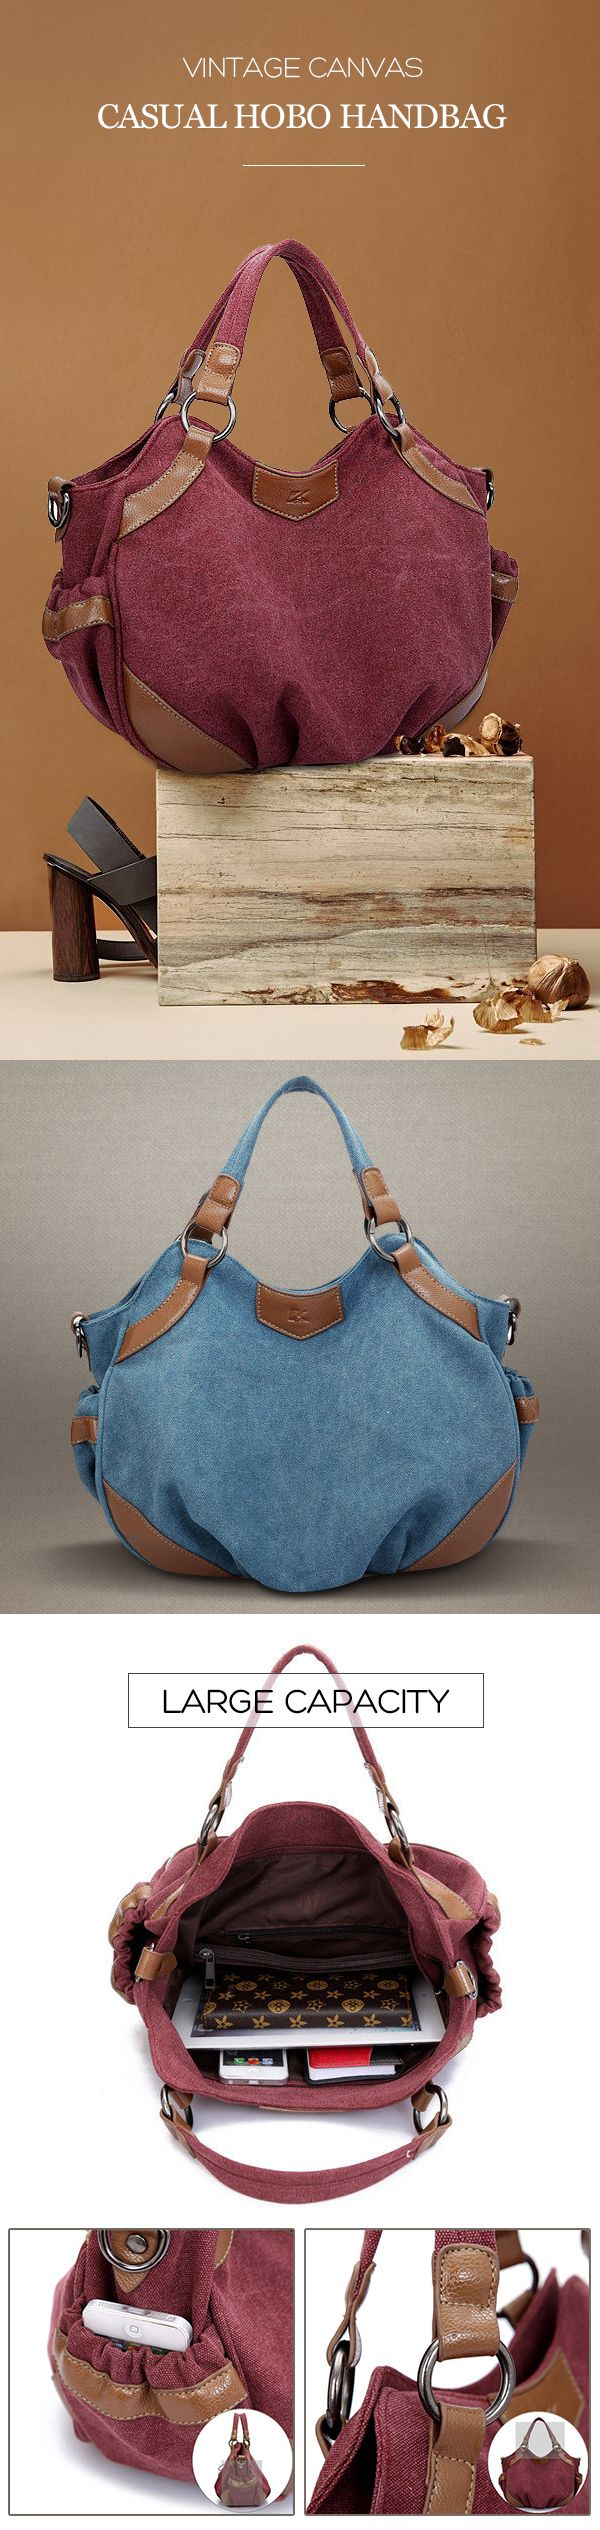 Women Vintage Casual Canvas Hobo Handbag Shoulder Bag Crossbody Bag